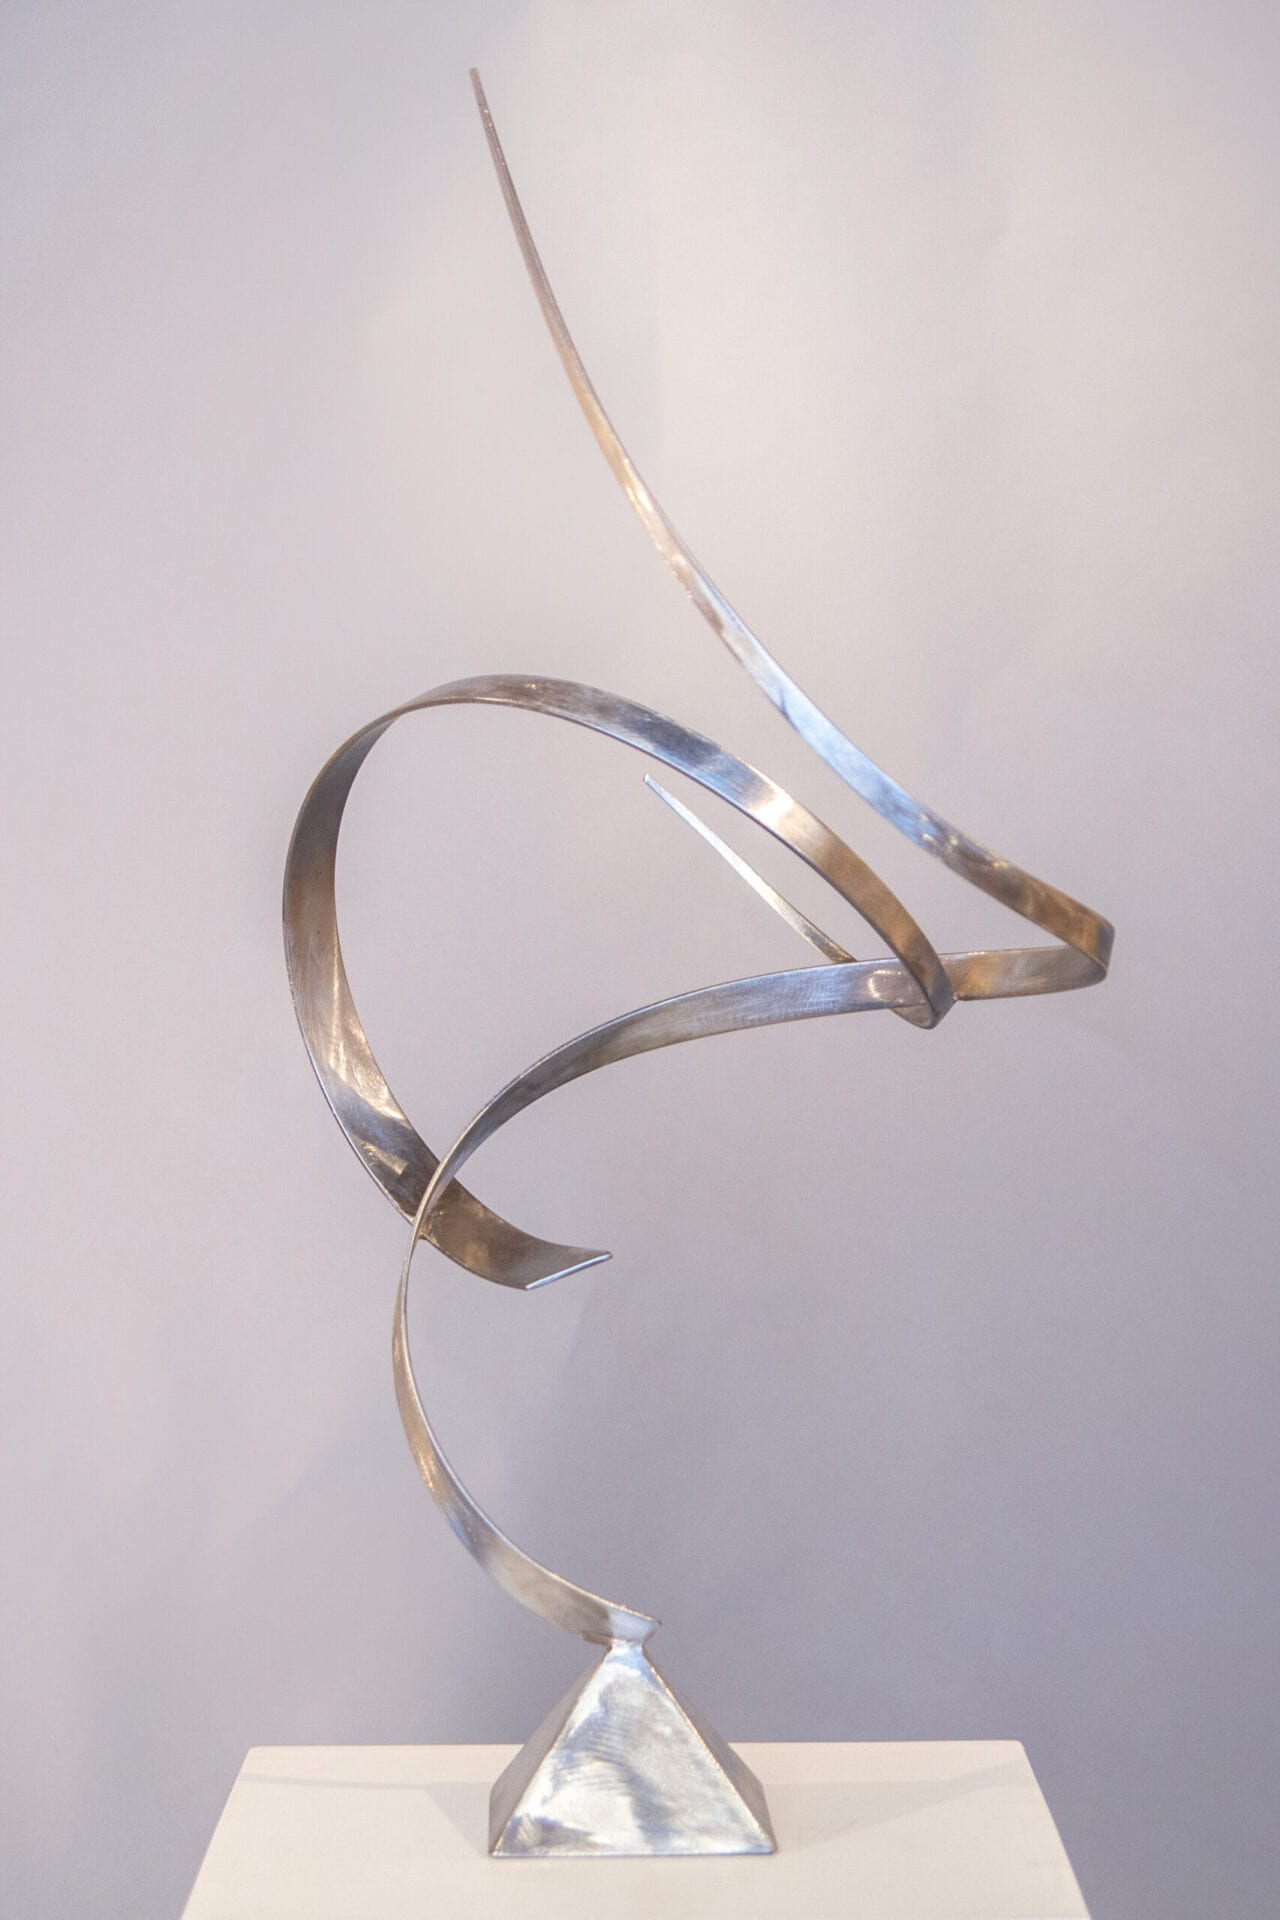 Simplicity I | Bruce Niemi | Stainless Steel | 32 x 17 x 16""